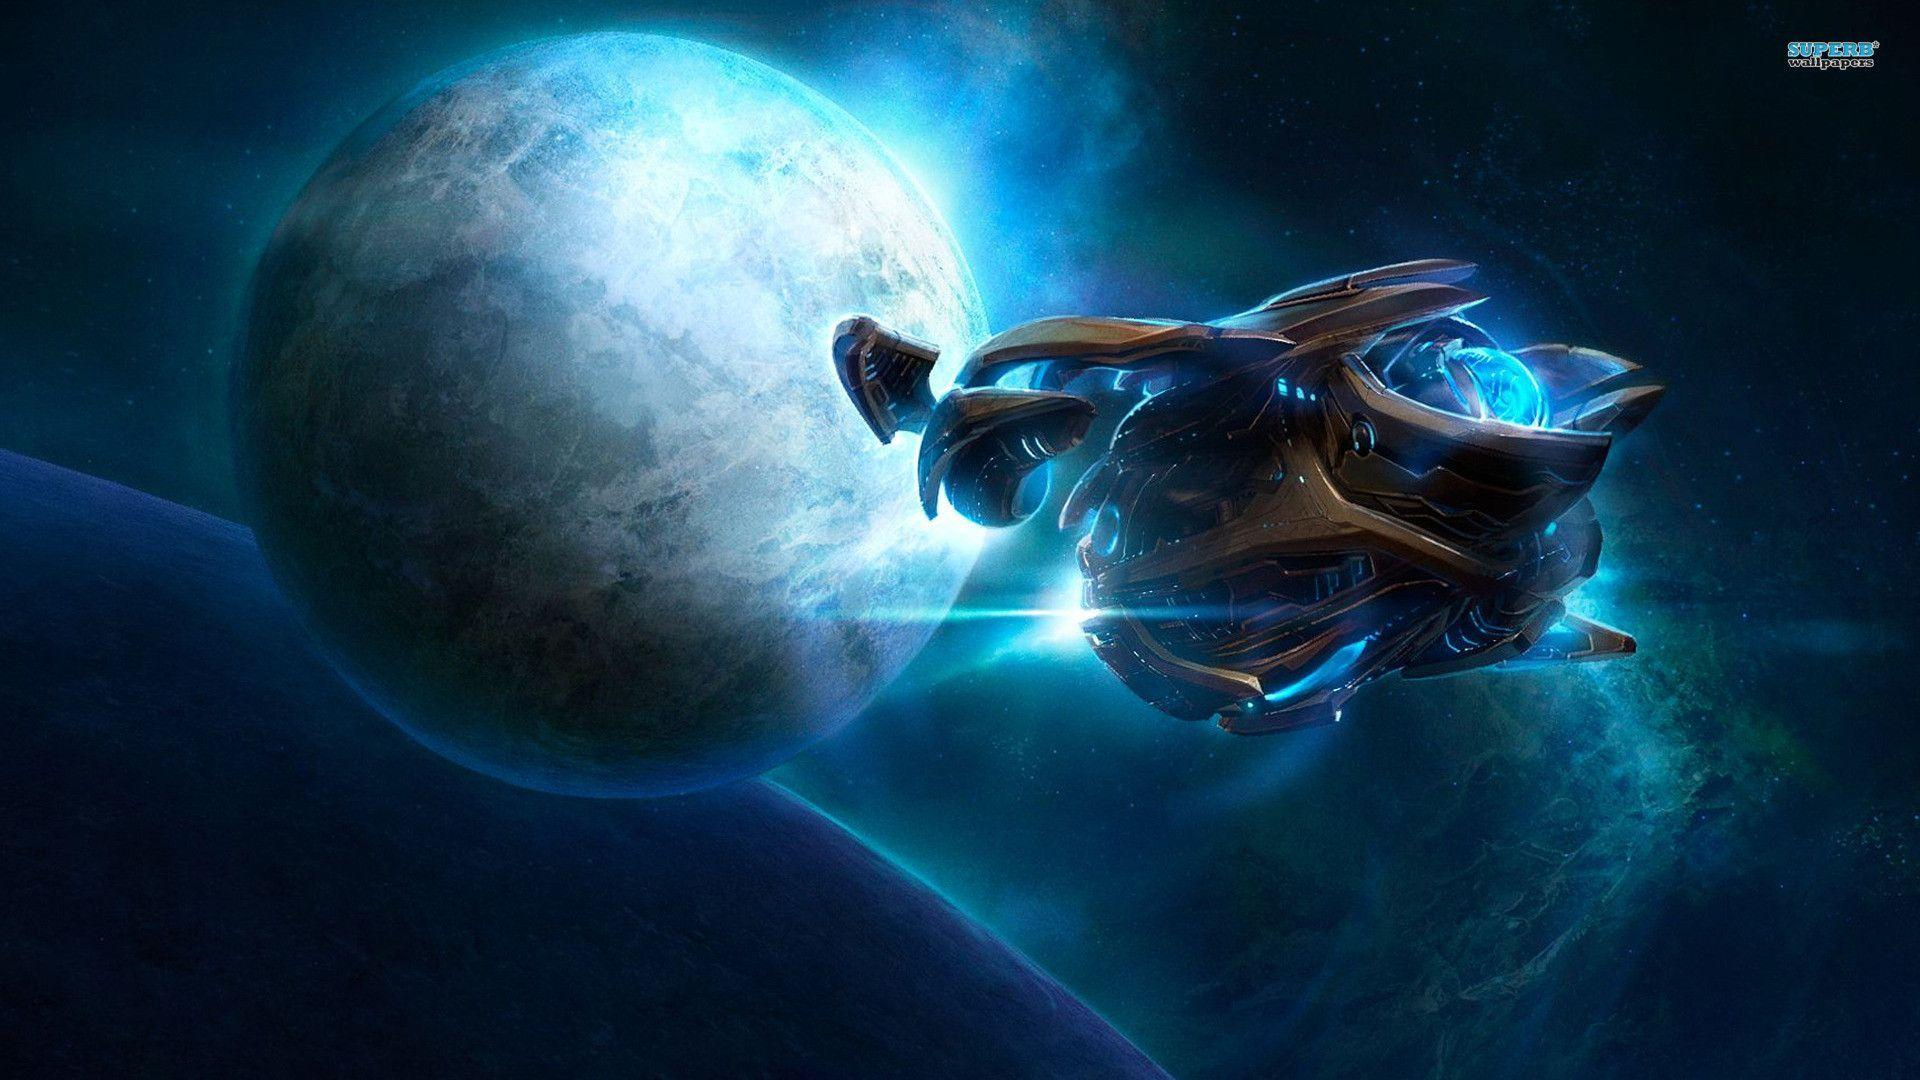 StarCraft II: Heart of the Swarm wallpapers